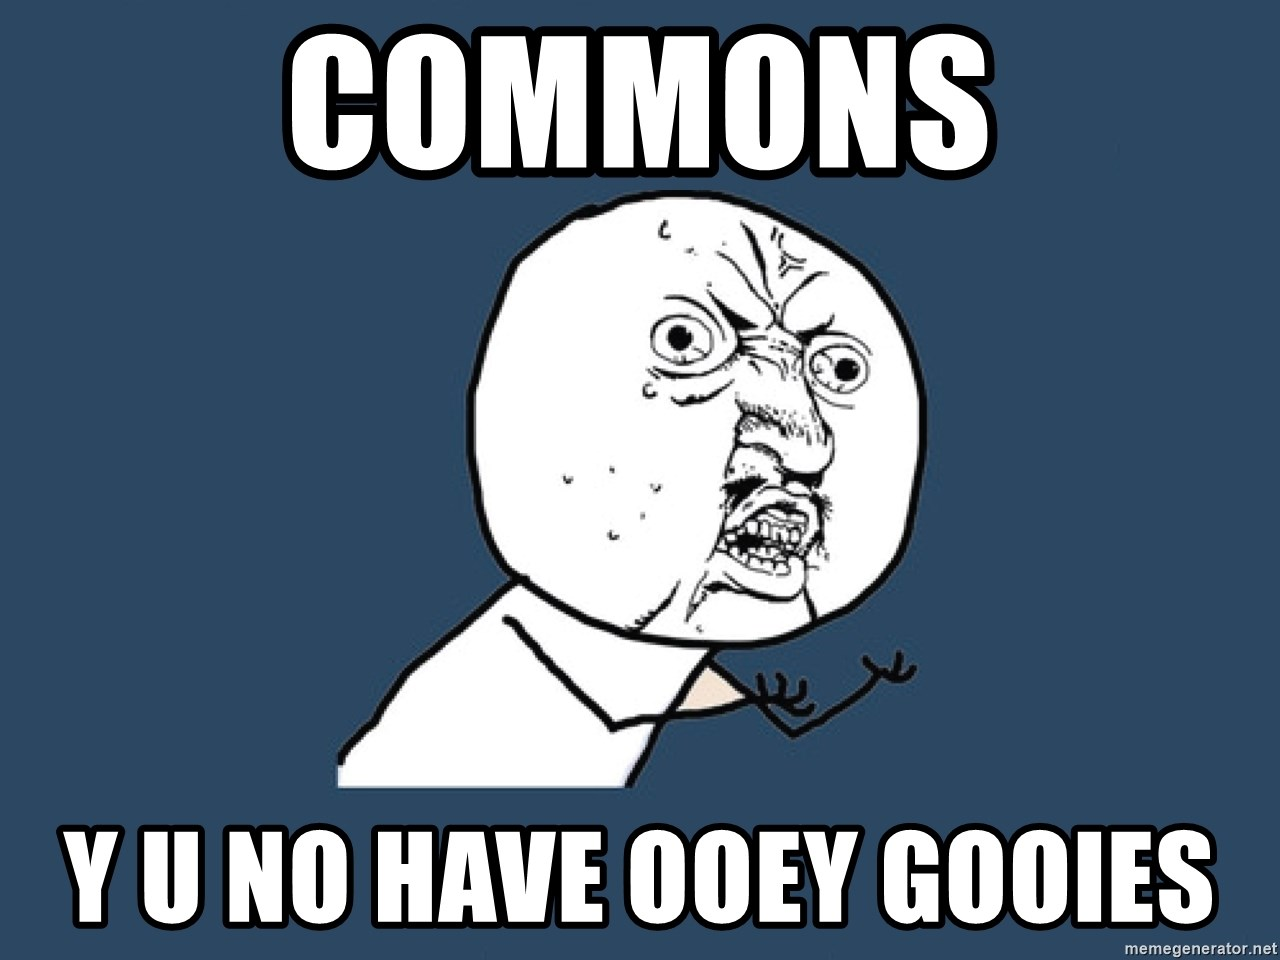 Y U No - Commons y u no have ooey gooies